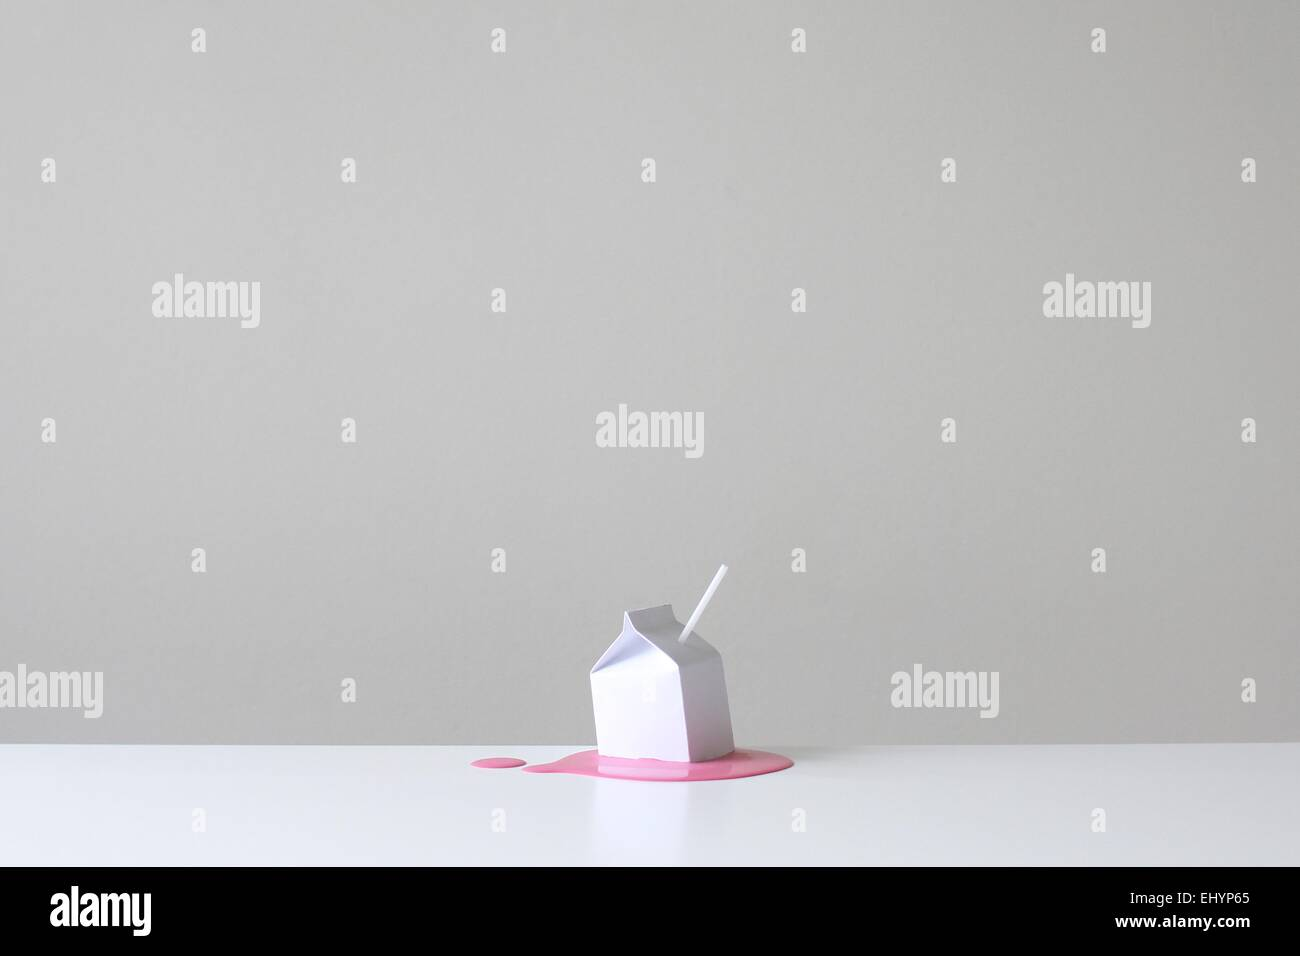 Conceptual milk carton with straw on a pool of pink strawberry millk - Stock Image